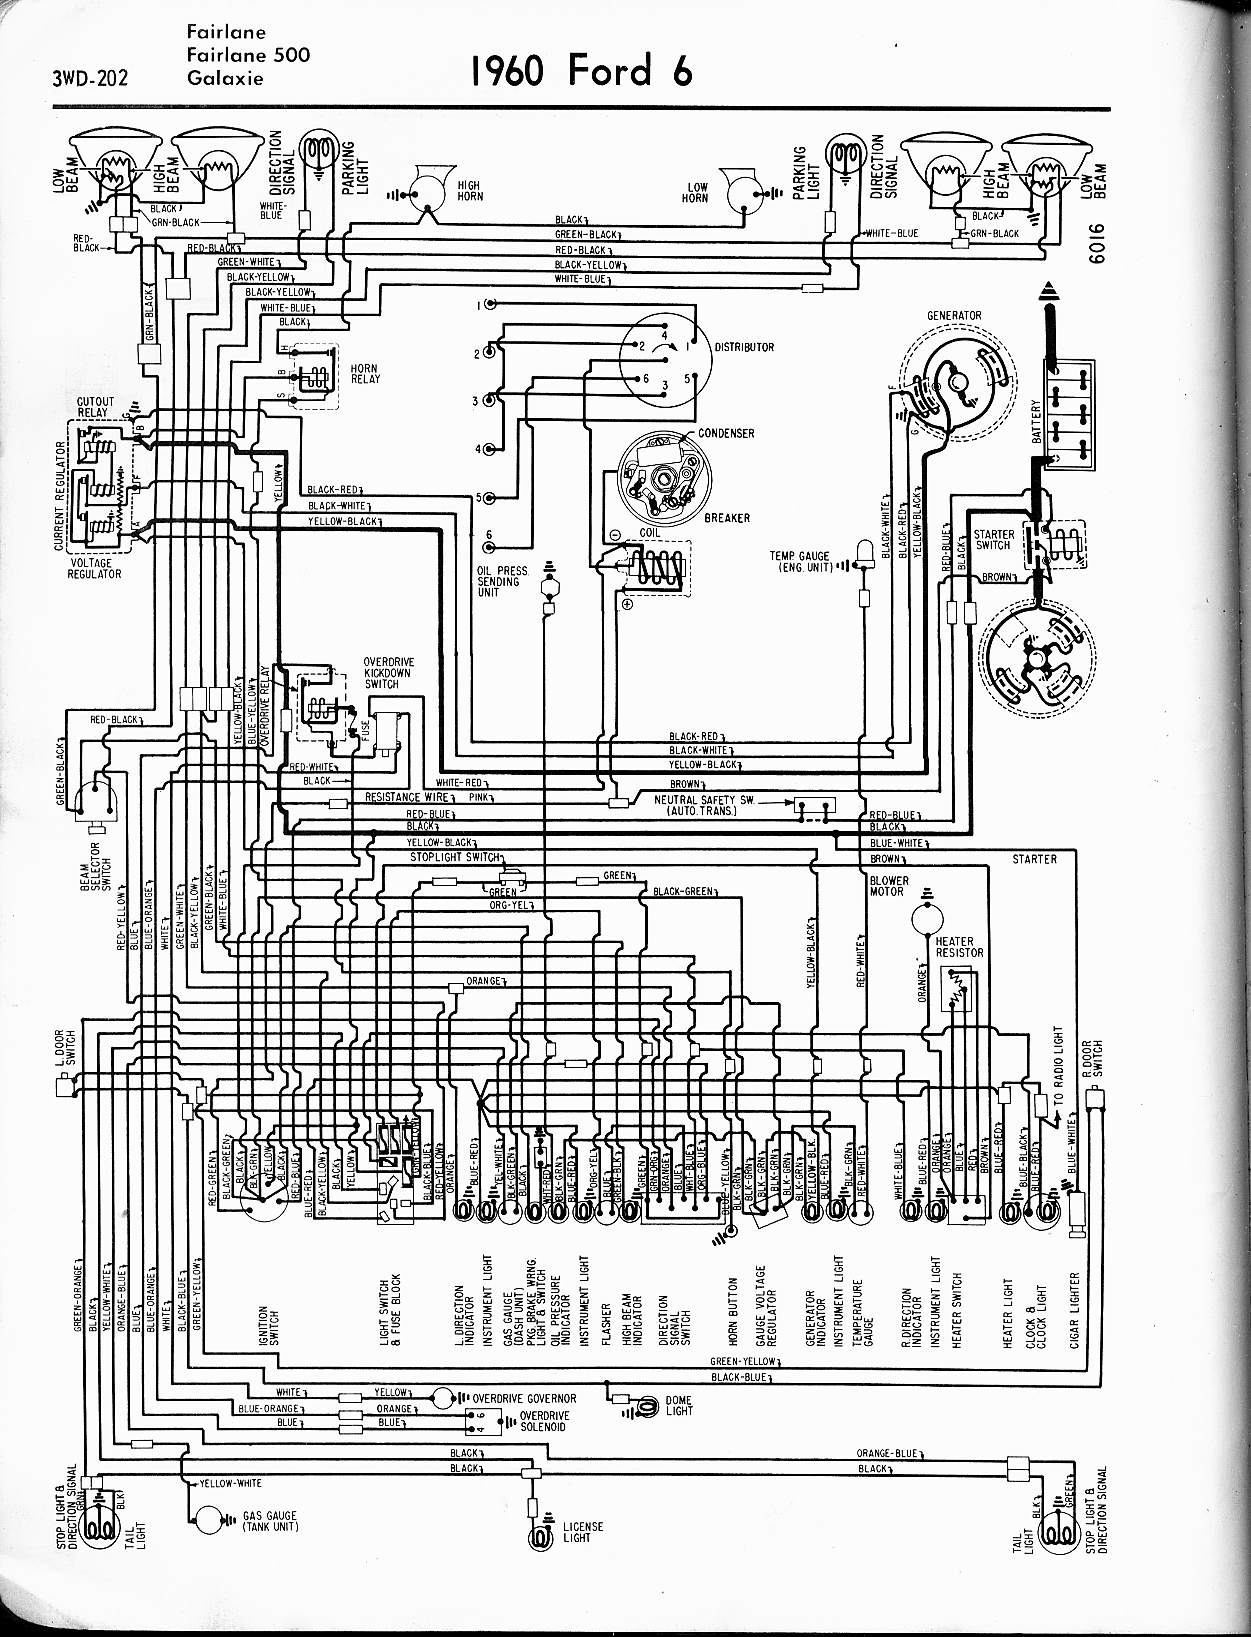 MWire5765 202 57 65 ford wiring diagrams 1969 ford f100 steering column wiring diagram at gsmportal.co